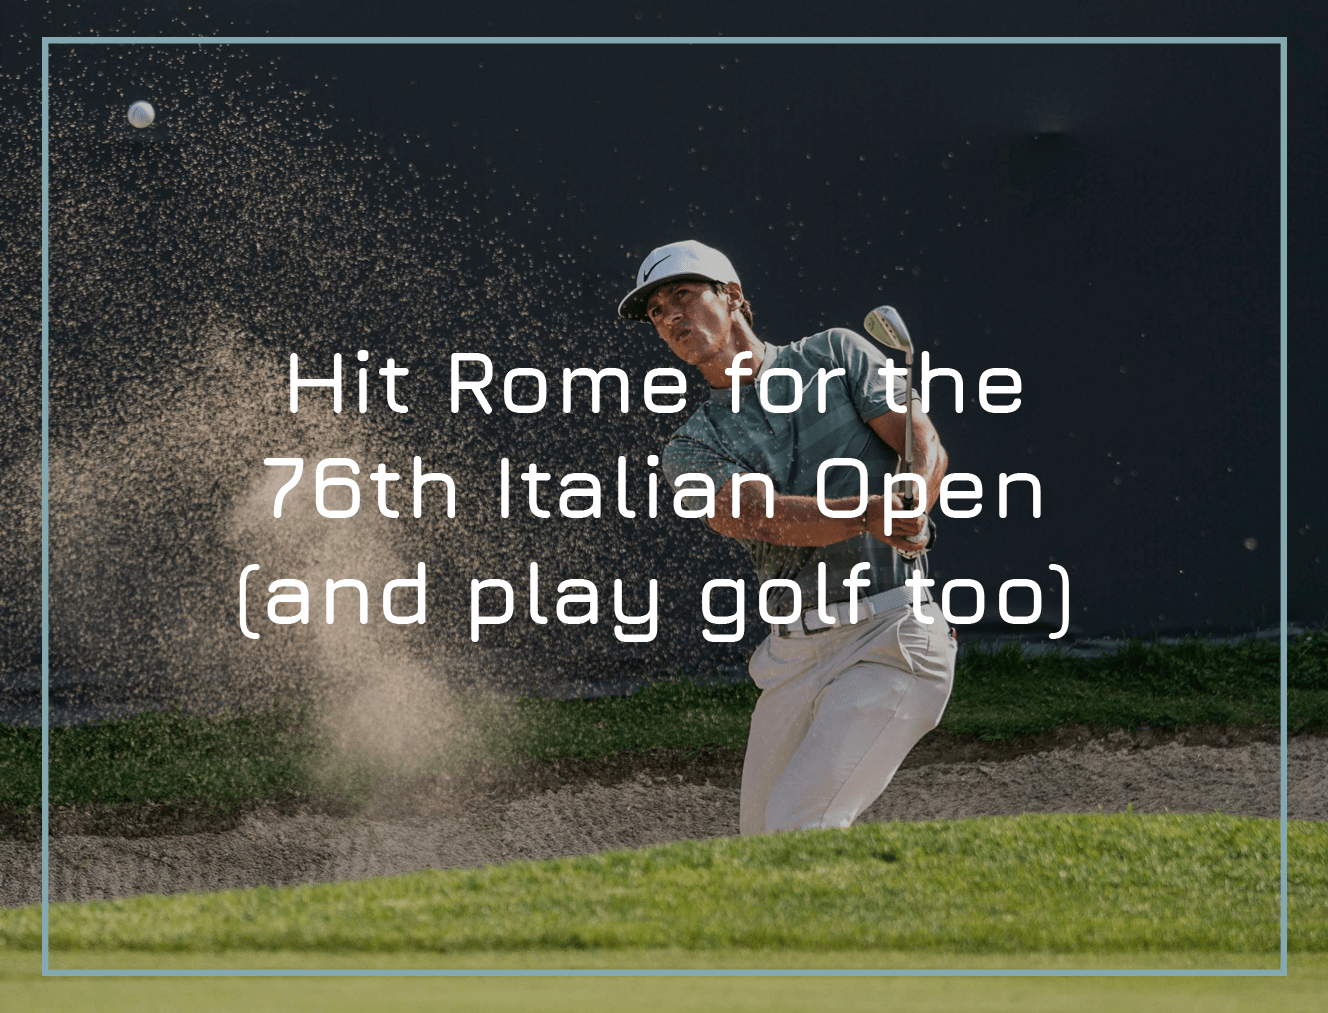 Hit Rome for the 76th Italian Open